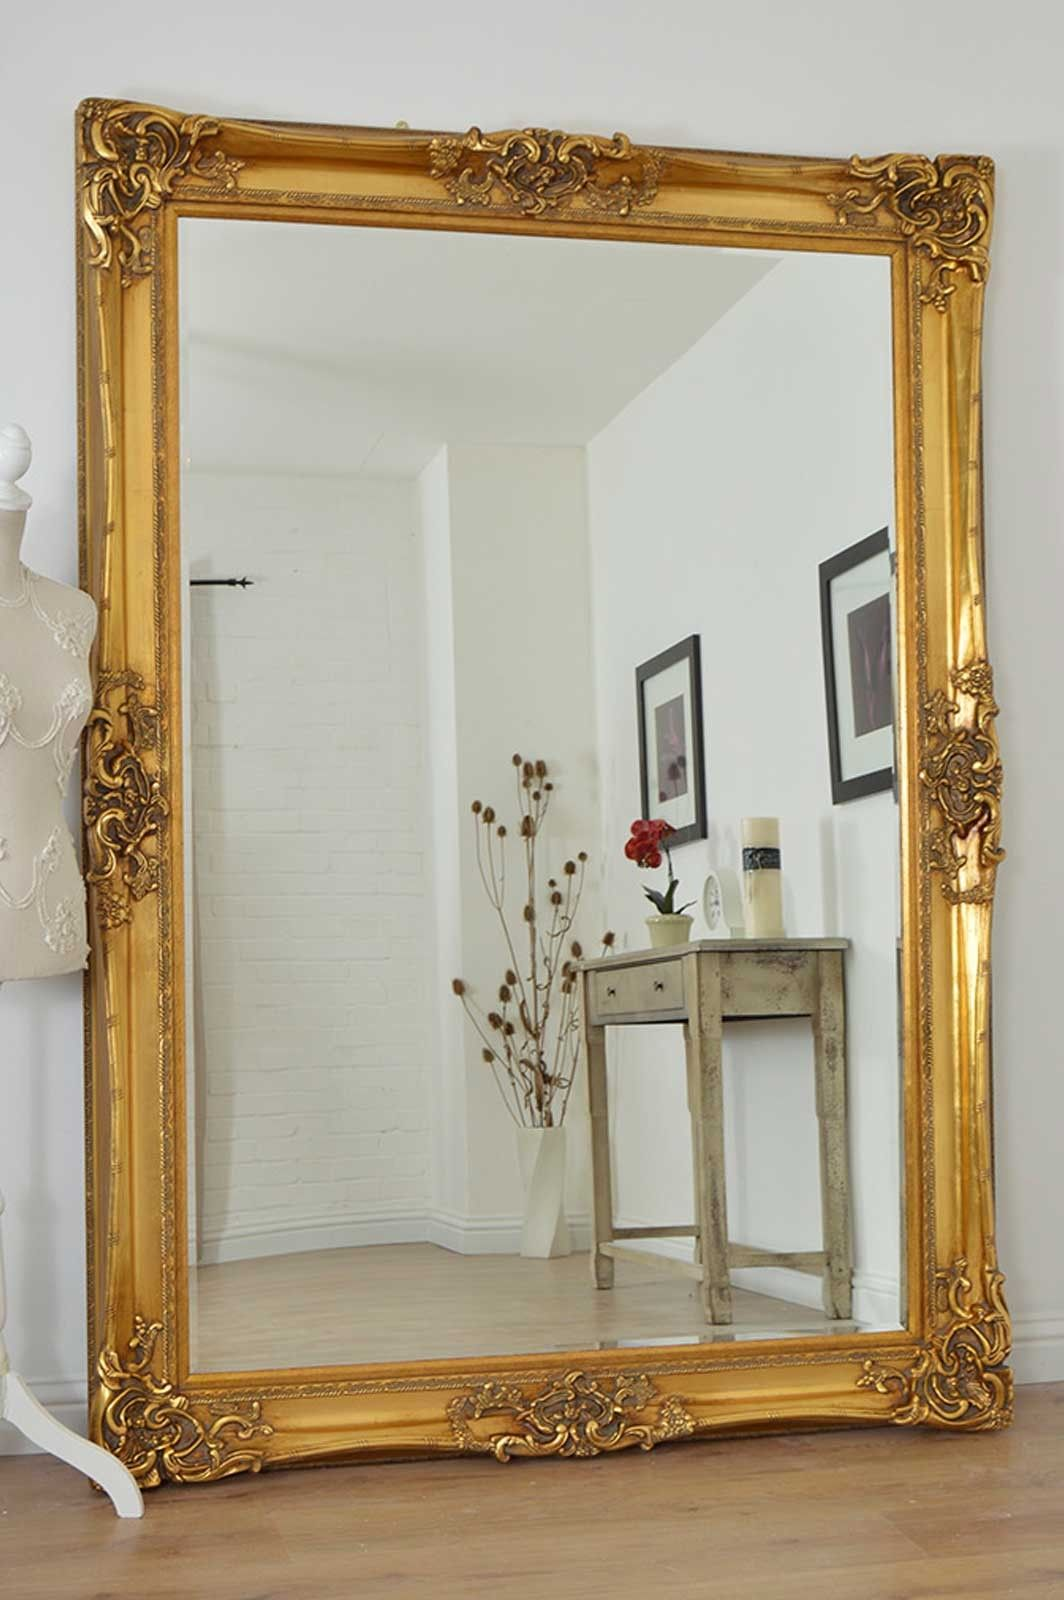 Large gold very ornate antique design wall mirror 7ft x Large mirror on wall